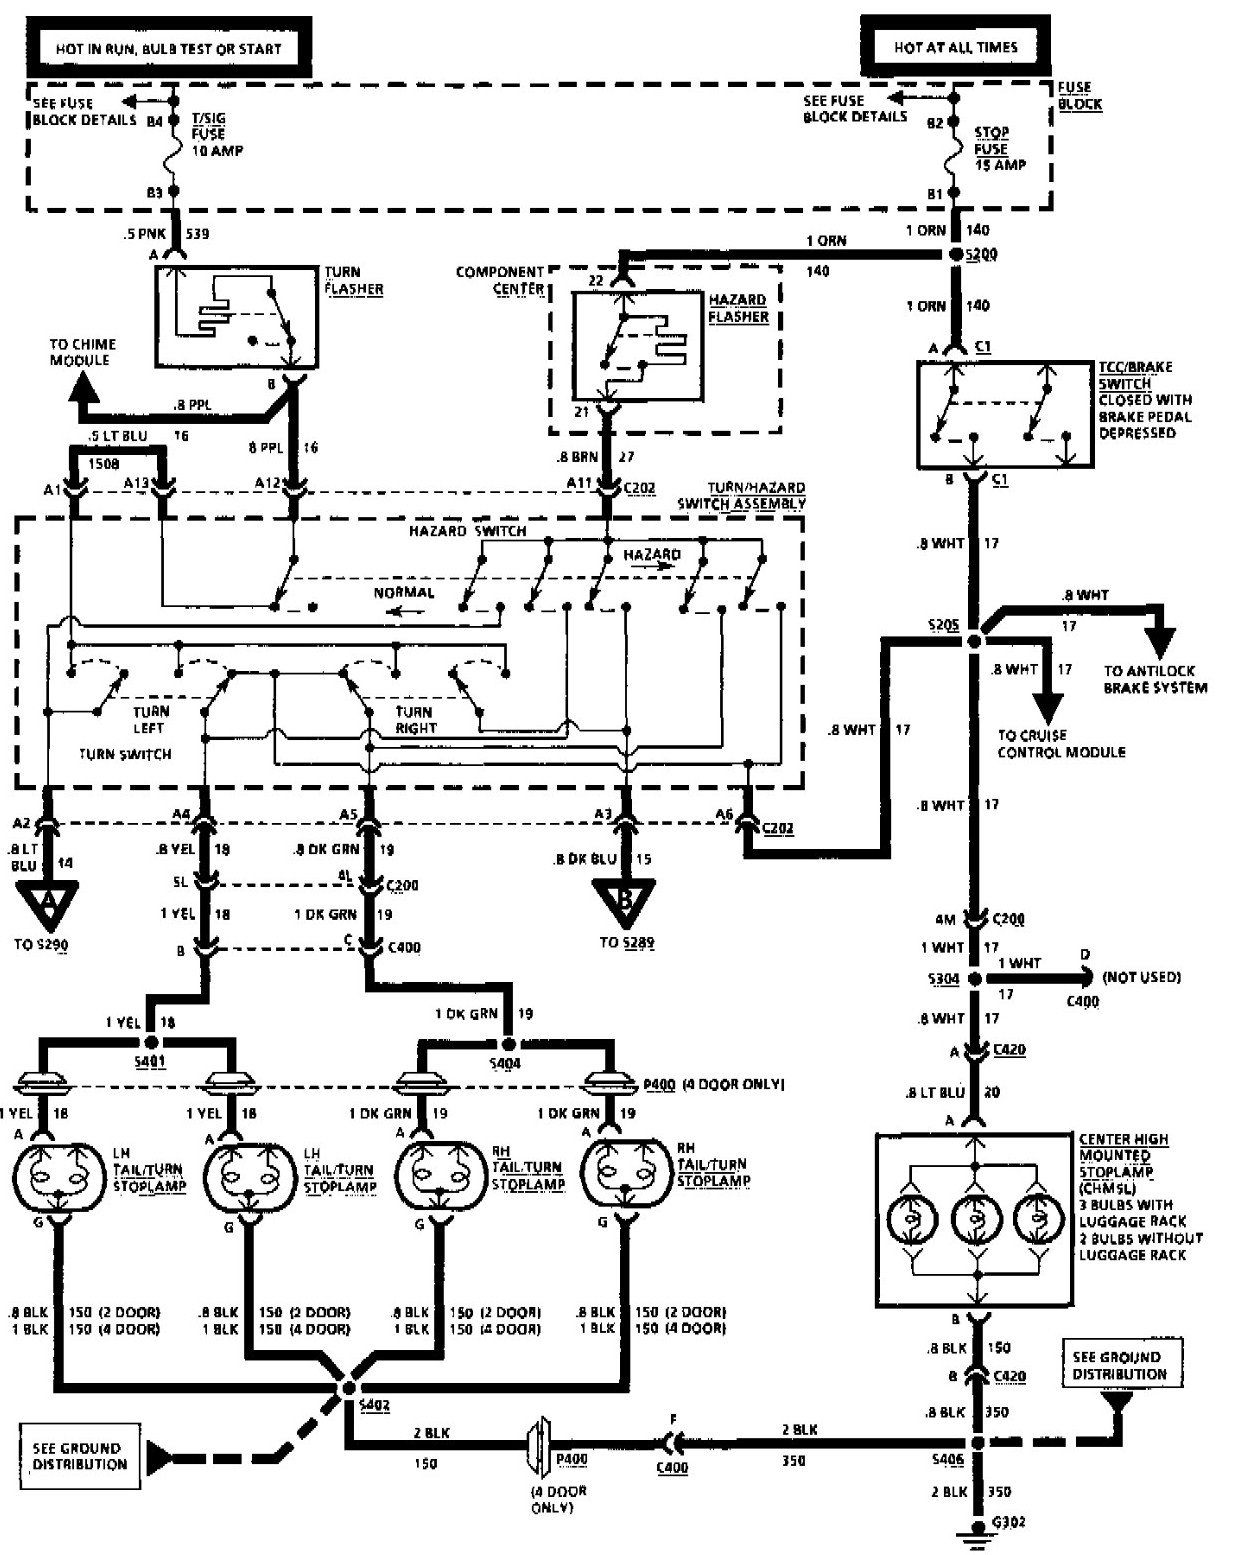 [DIAGRAM] 1996 Oldsmobile Cutlass Ciera Wiring Diagram